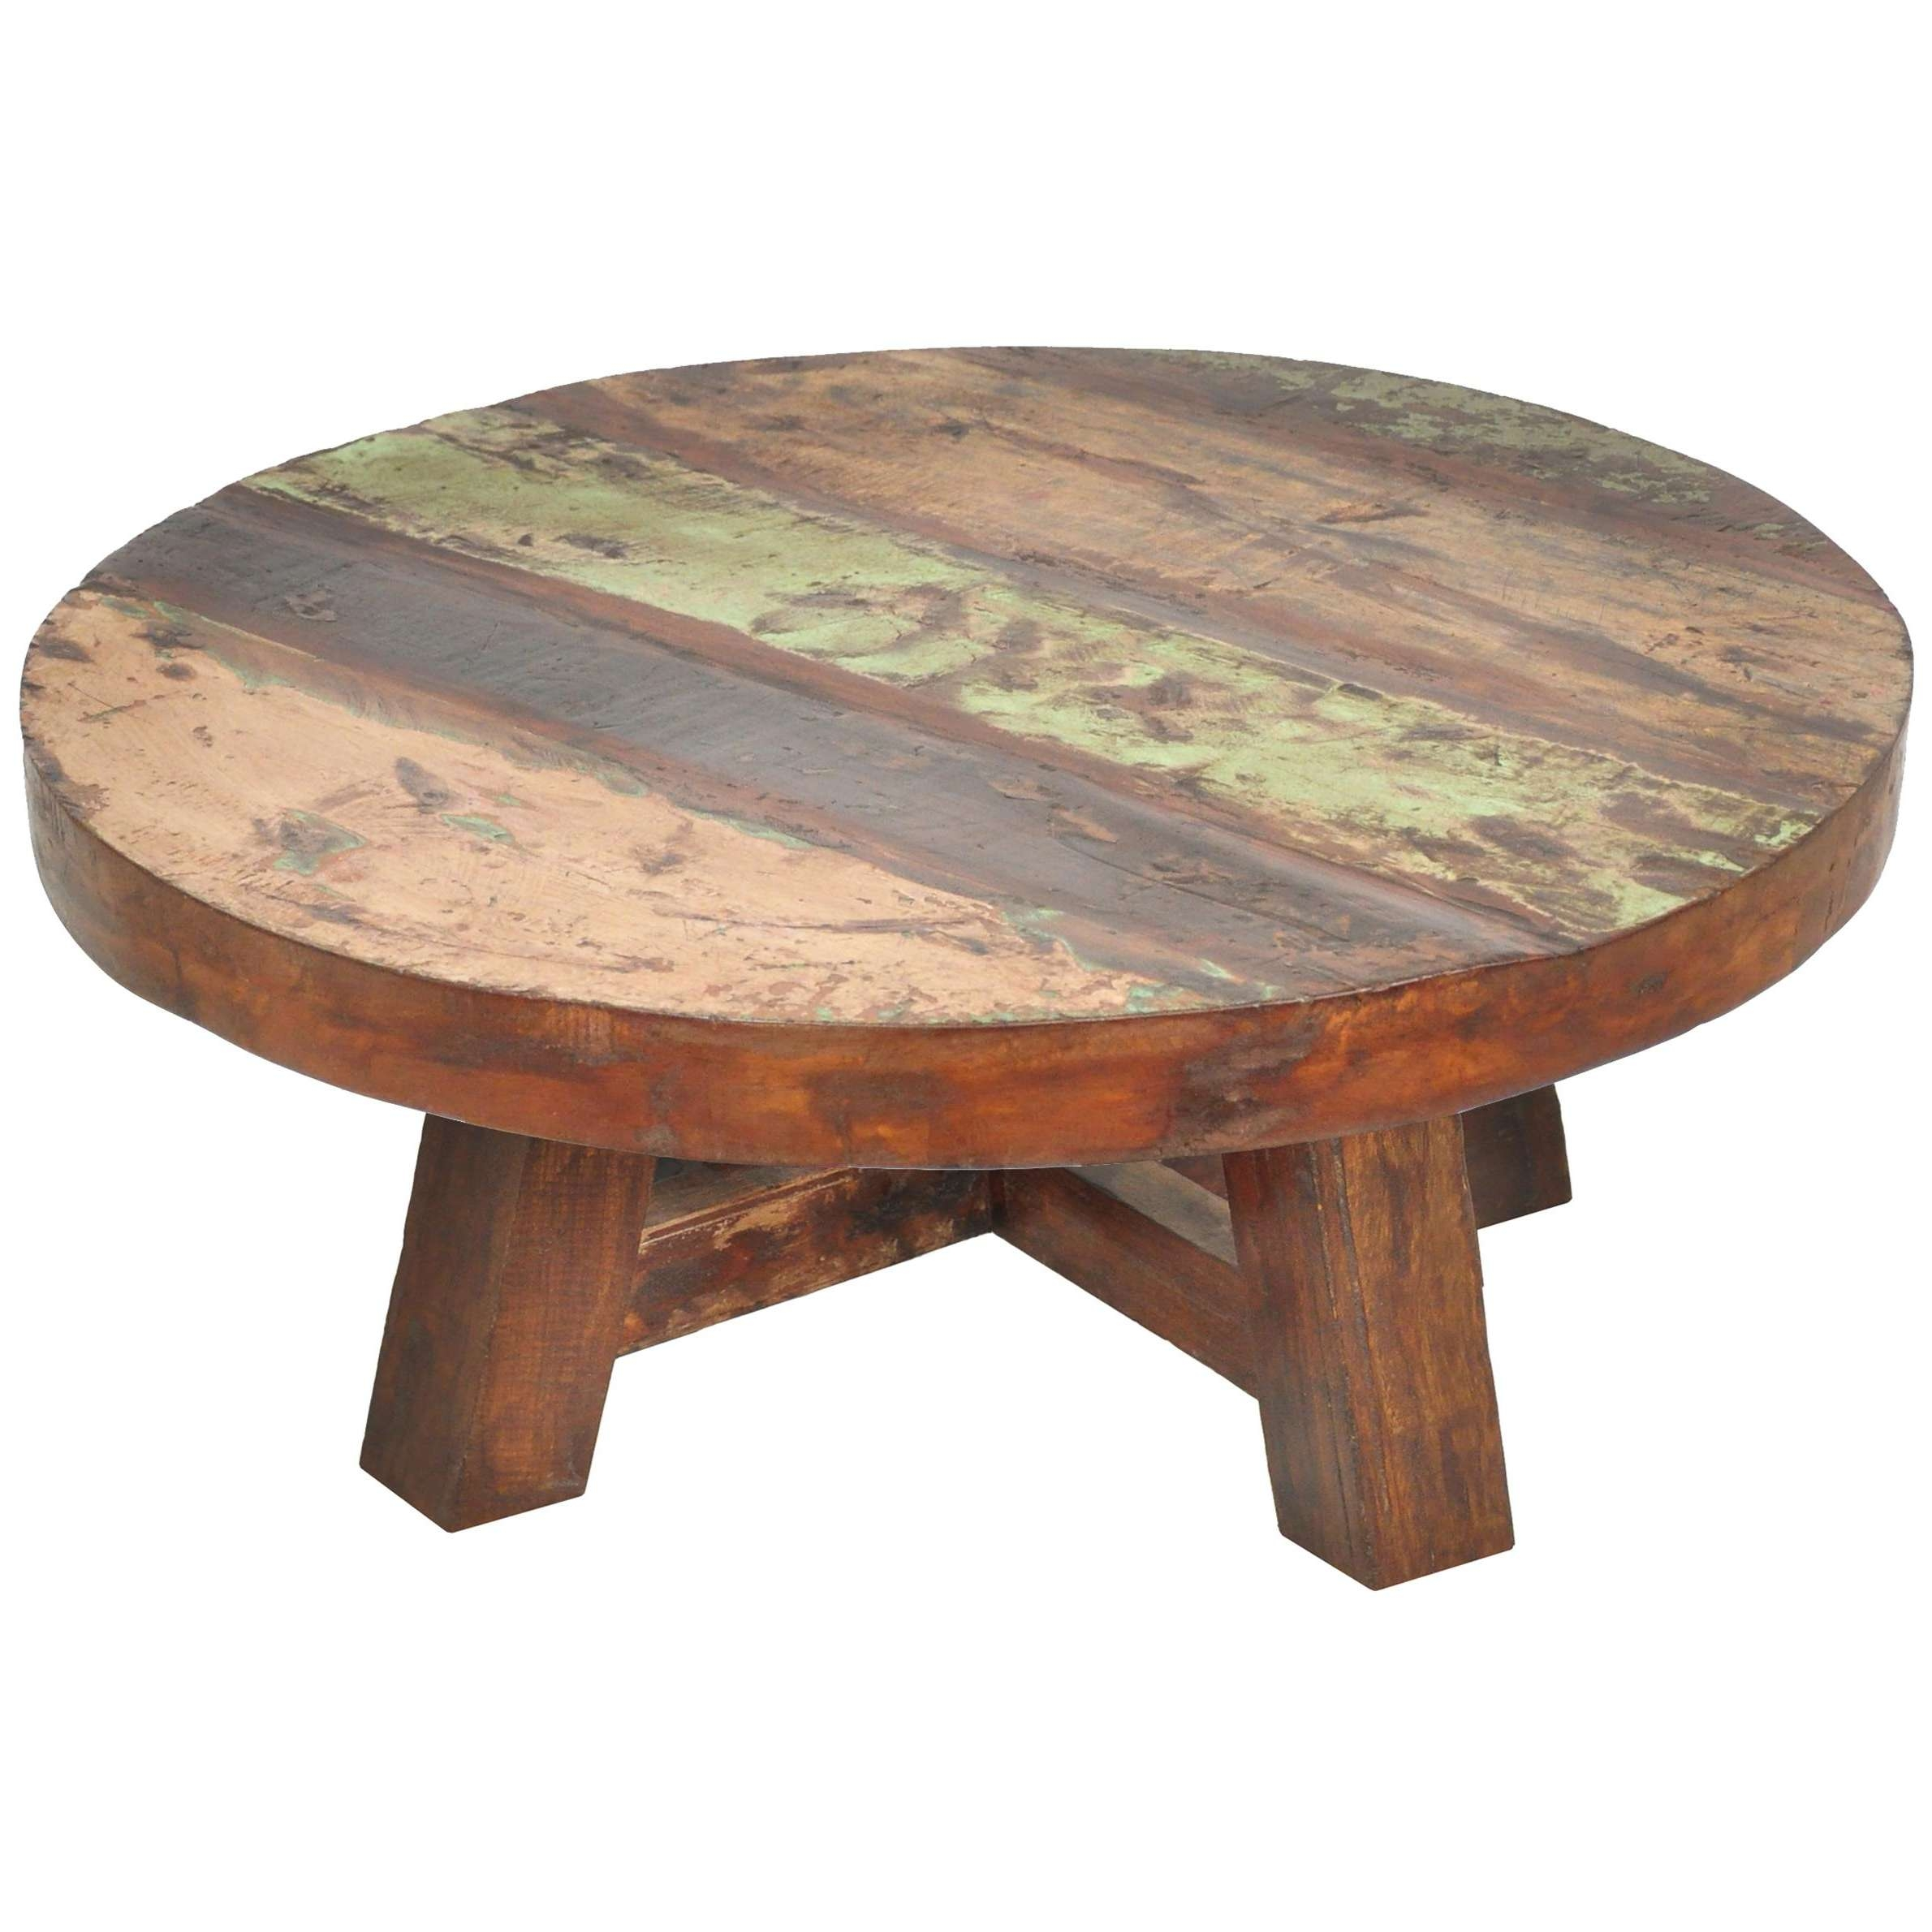 Round Natural Wood Coffee Table – Chocoaddicts – Chocoaddicts Throughout Recent Wooden Garden Coffee Tables (View 16 of 20)